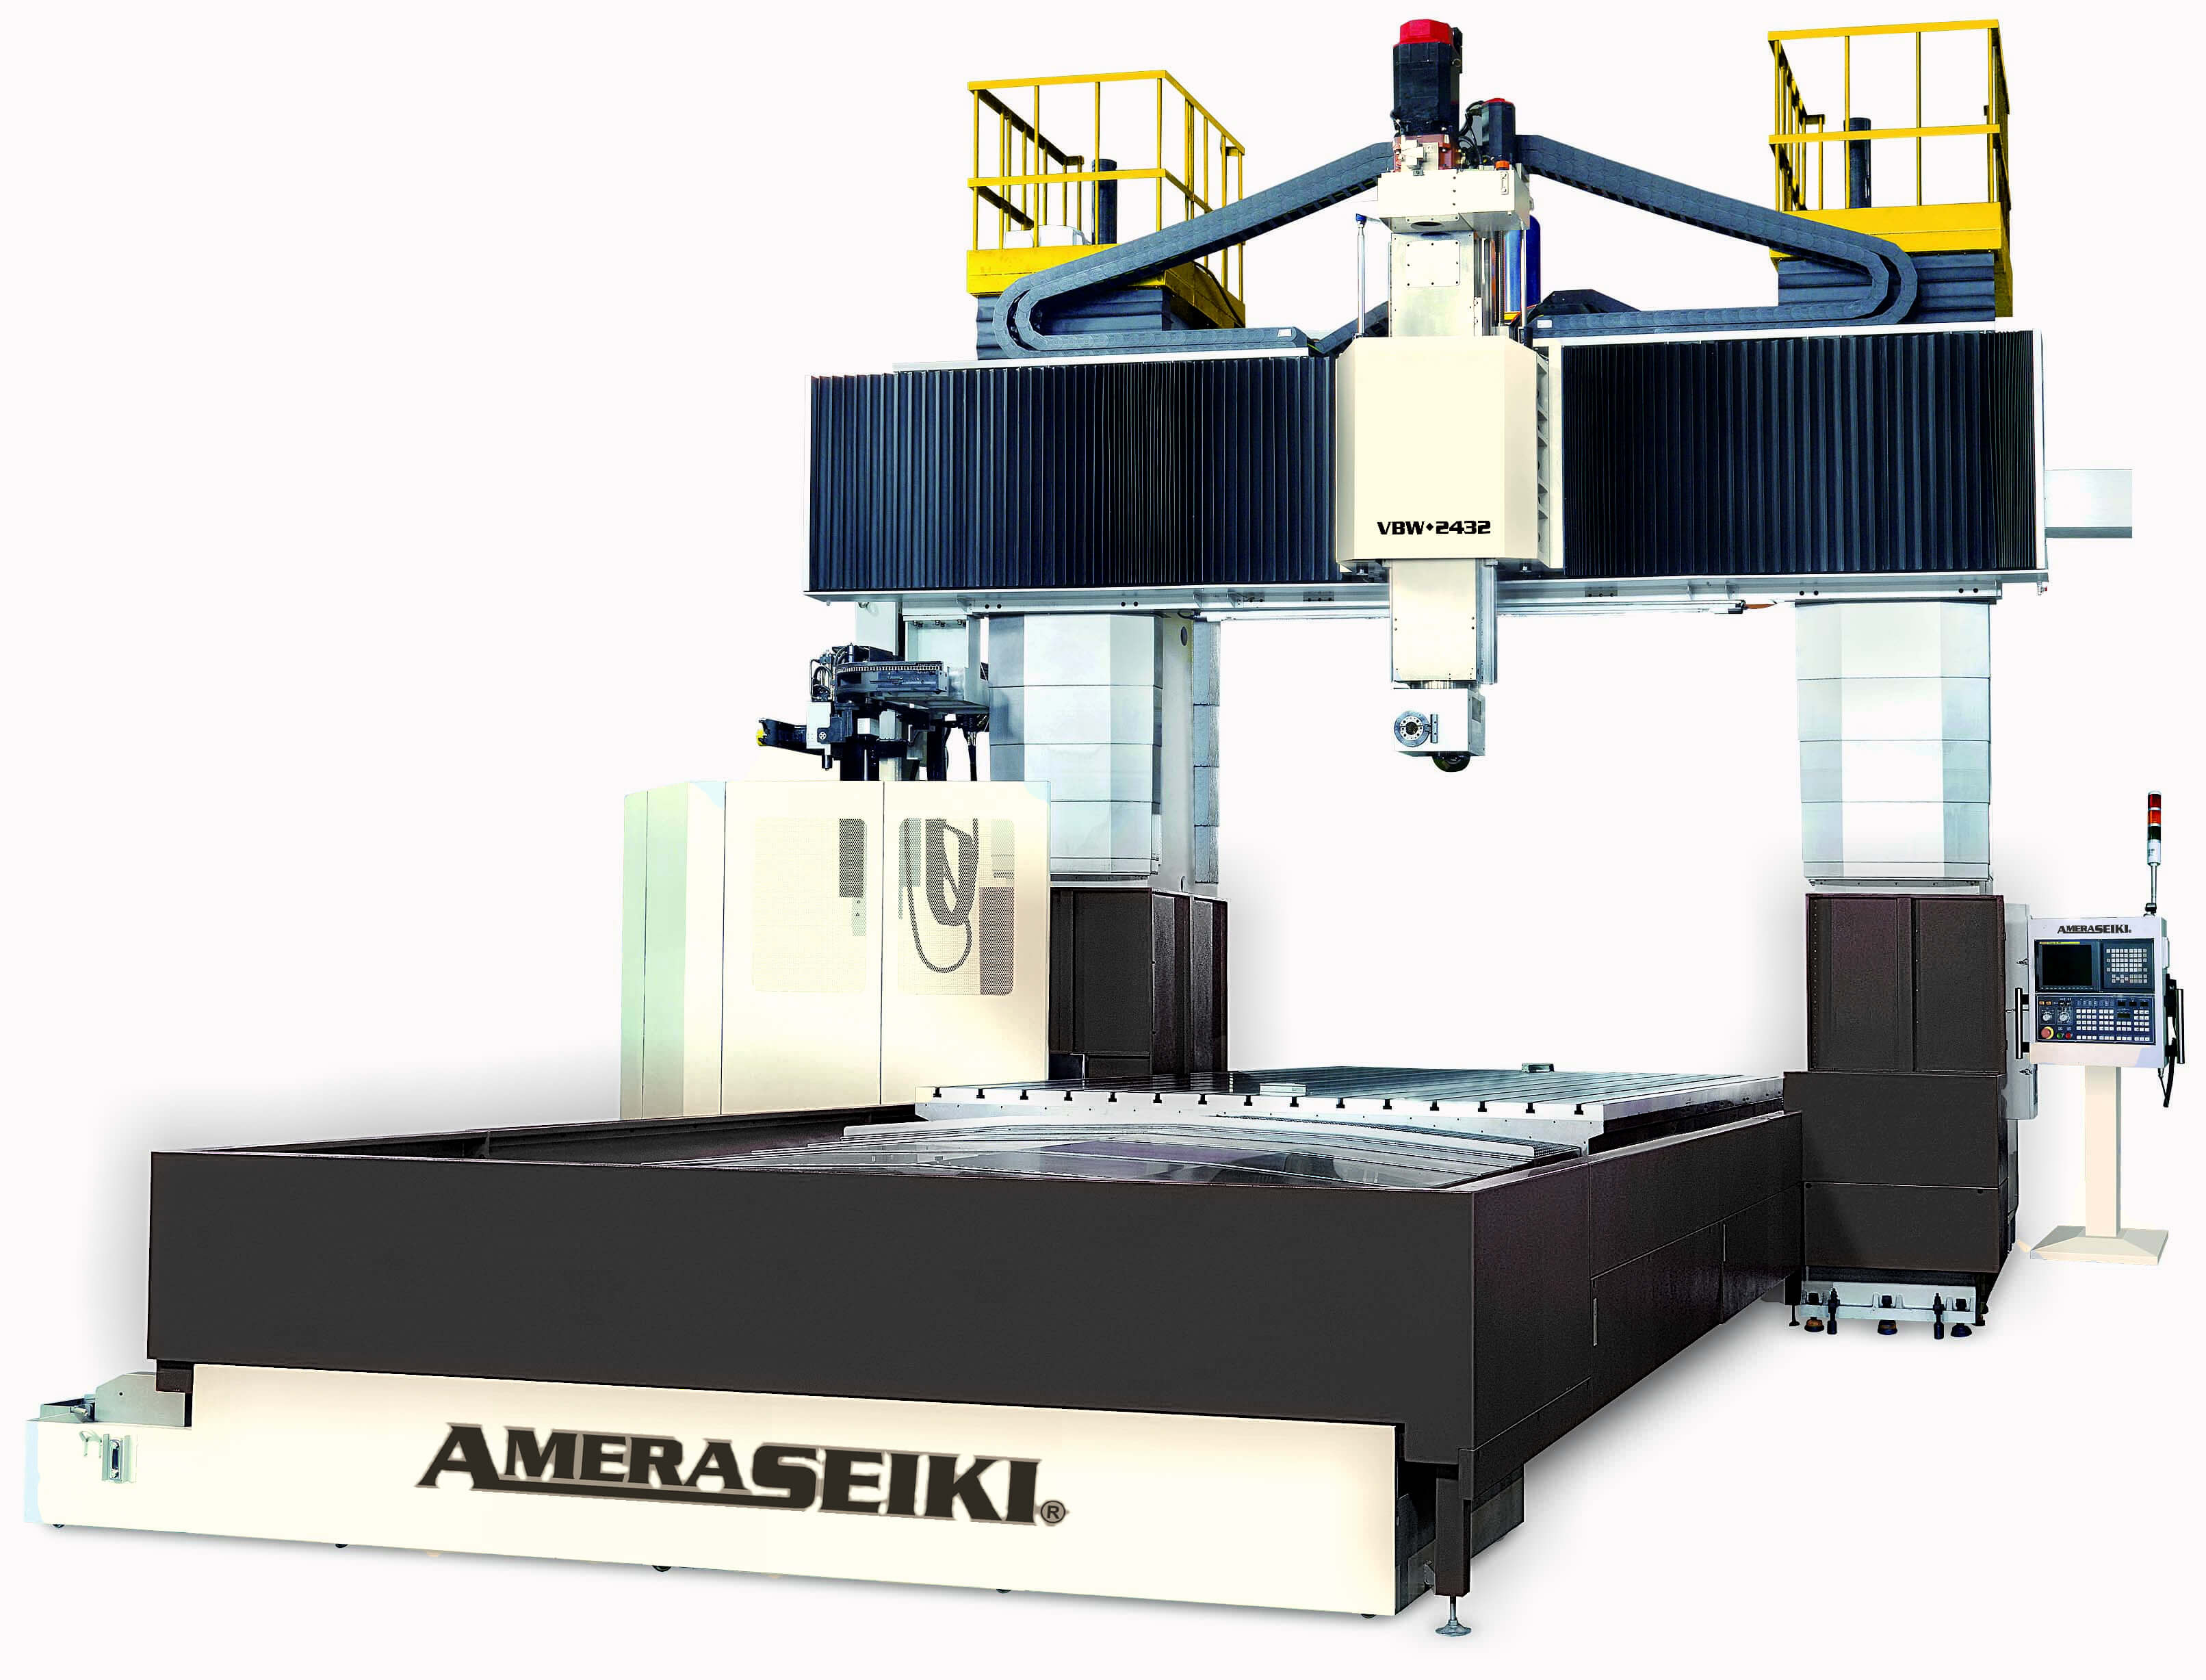 Amera-Seiki VB series bridge mills